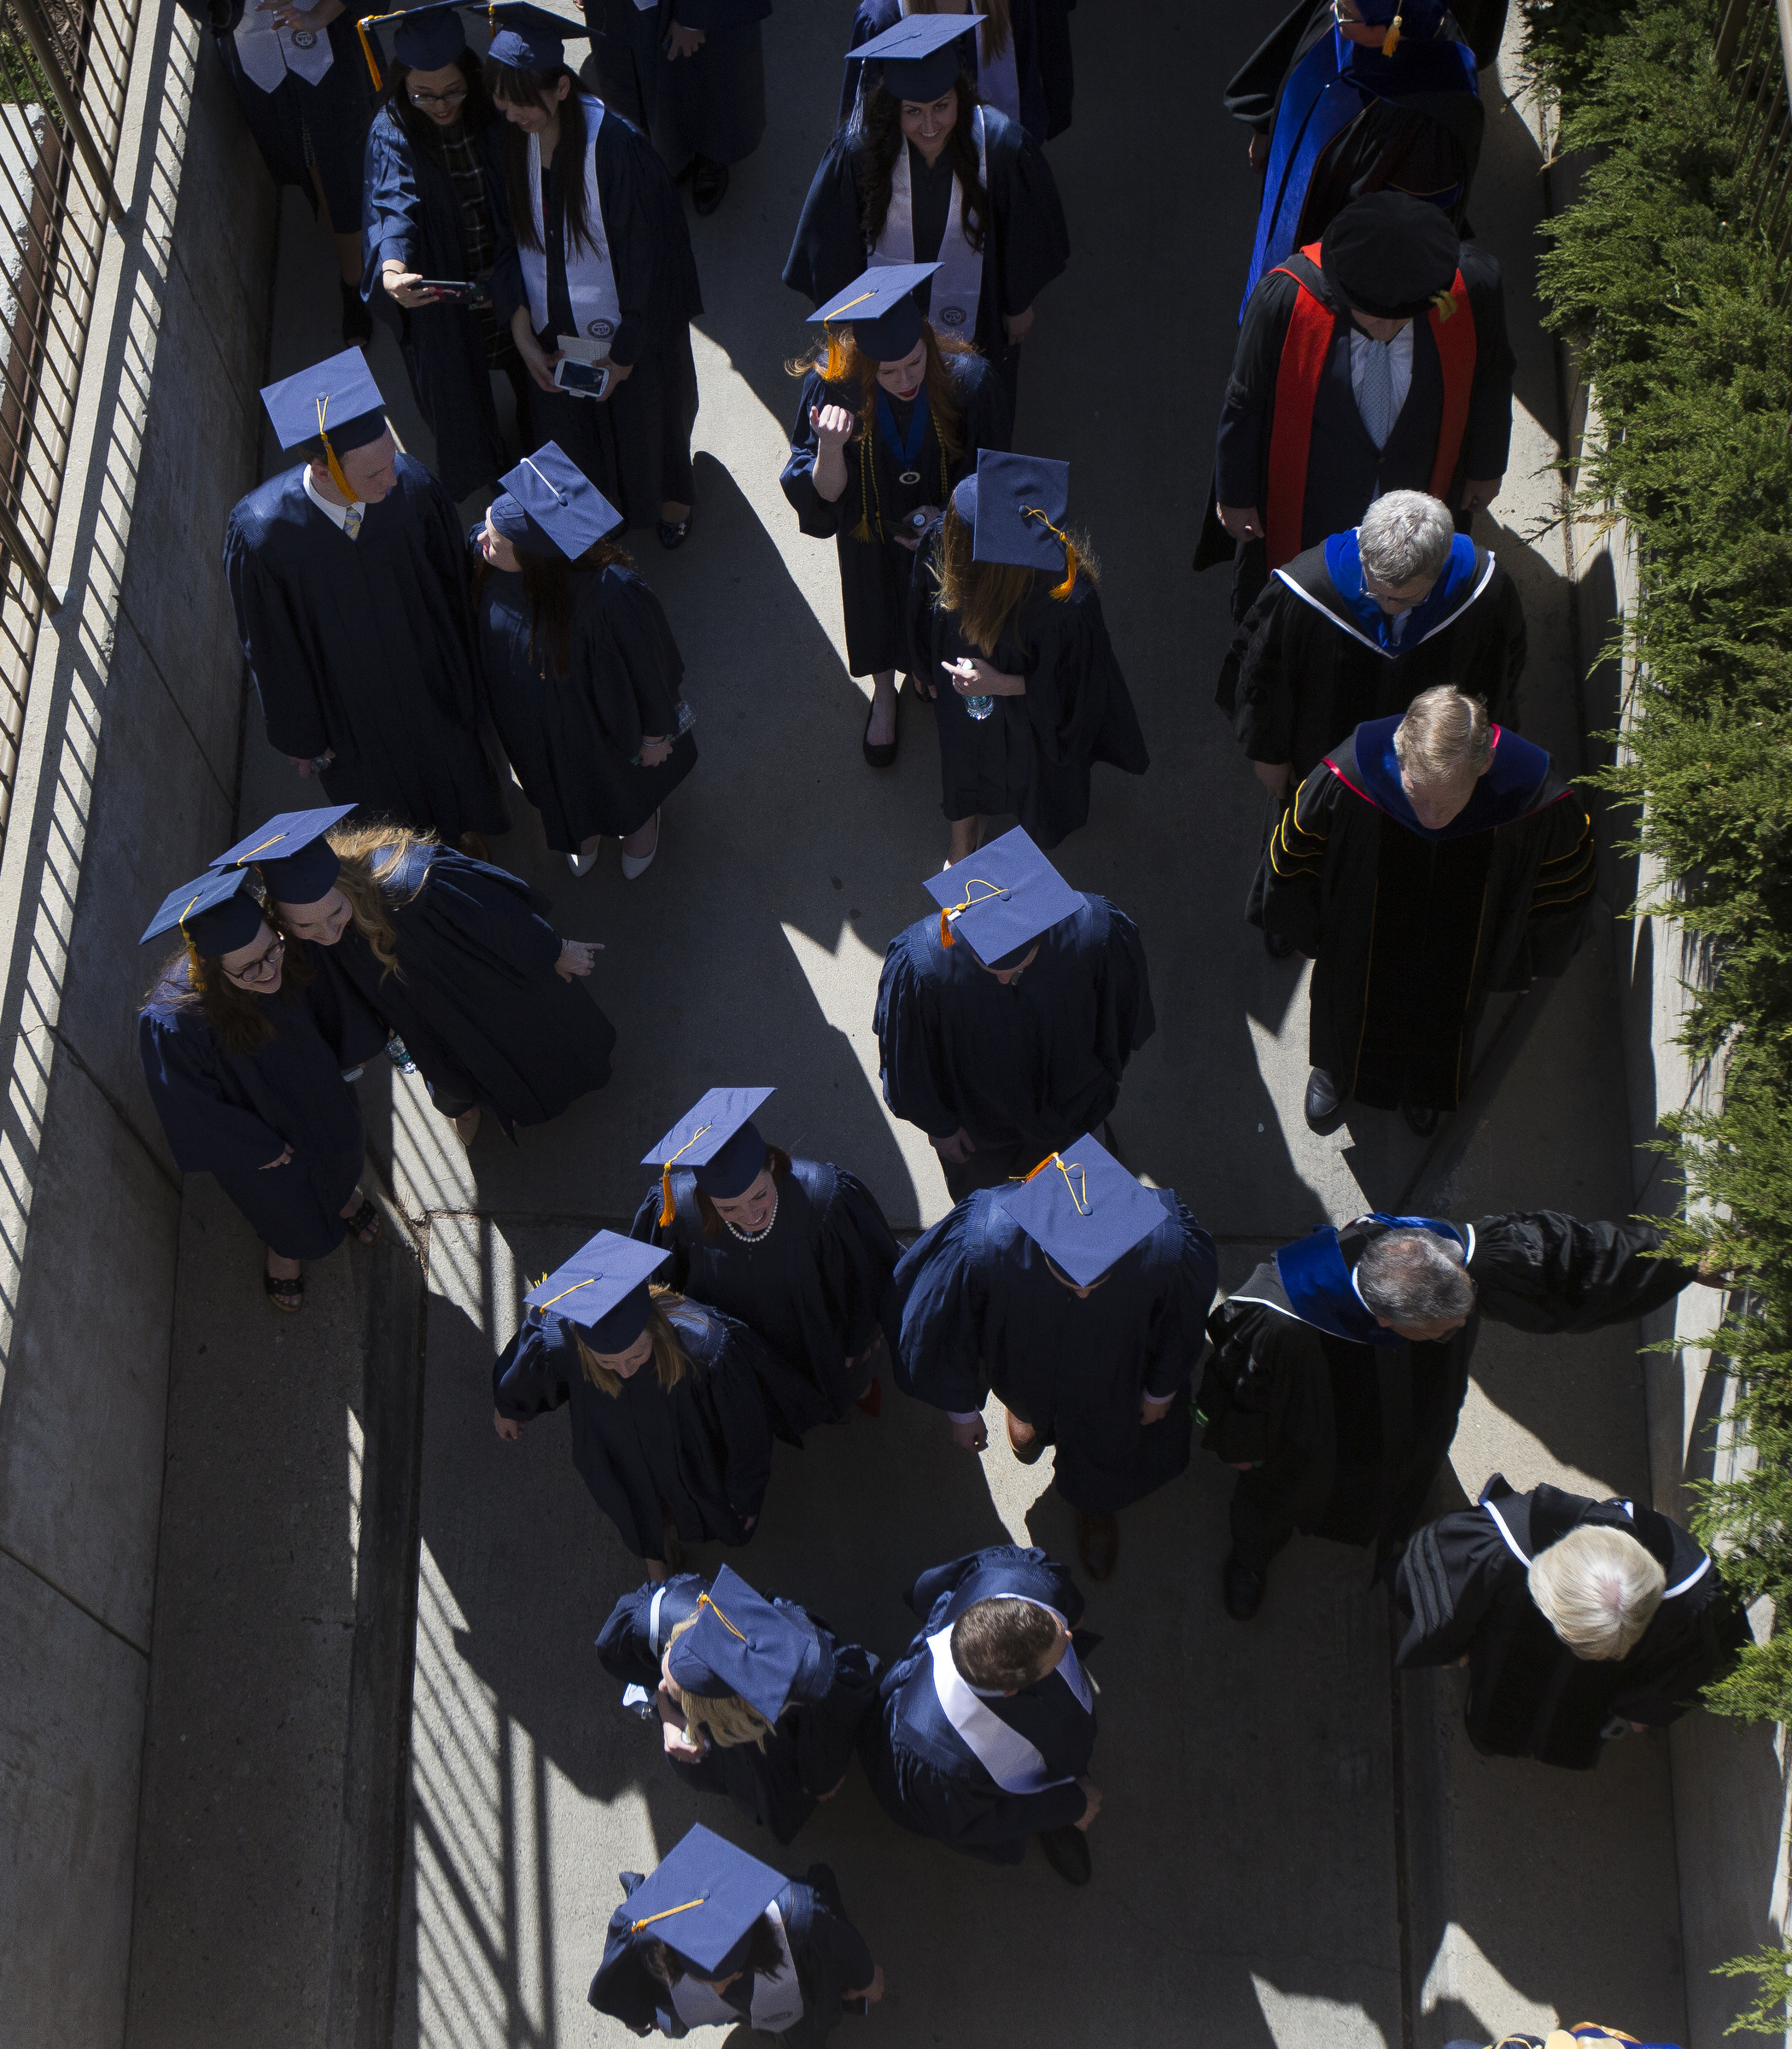 Graduates file into the Marriott Center prior to the start of Brigham Young University's commencement ceremony on Thursday, April 26, 2018, in Provo. BYU is awarding nearly 6,300 degrees to graduates this week.